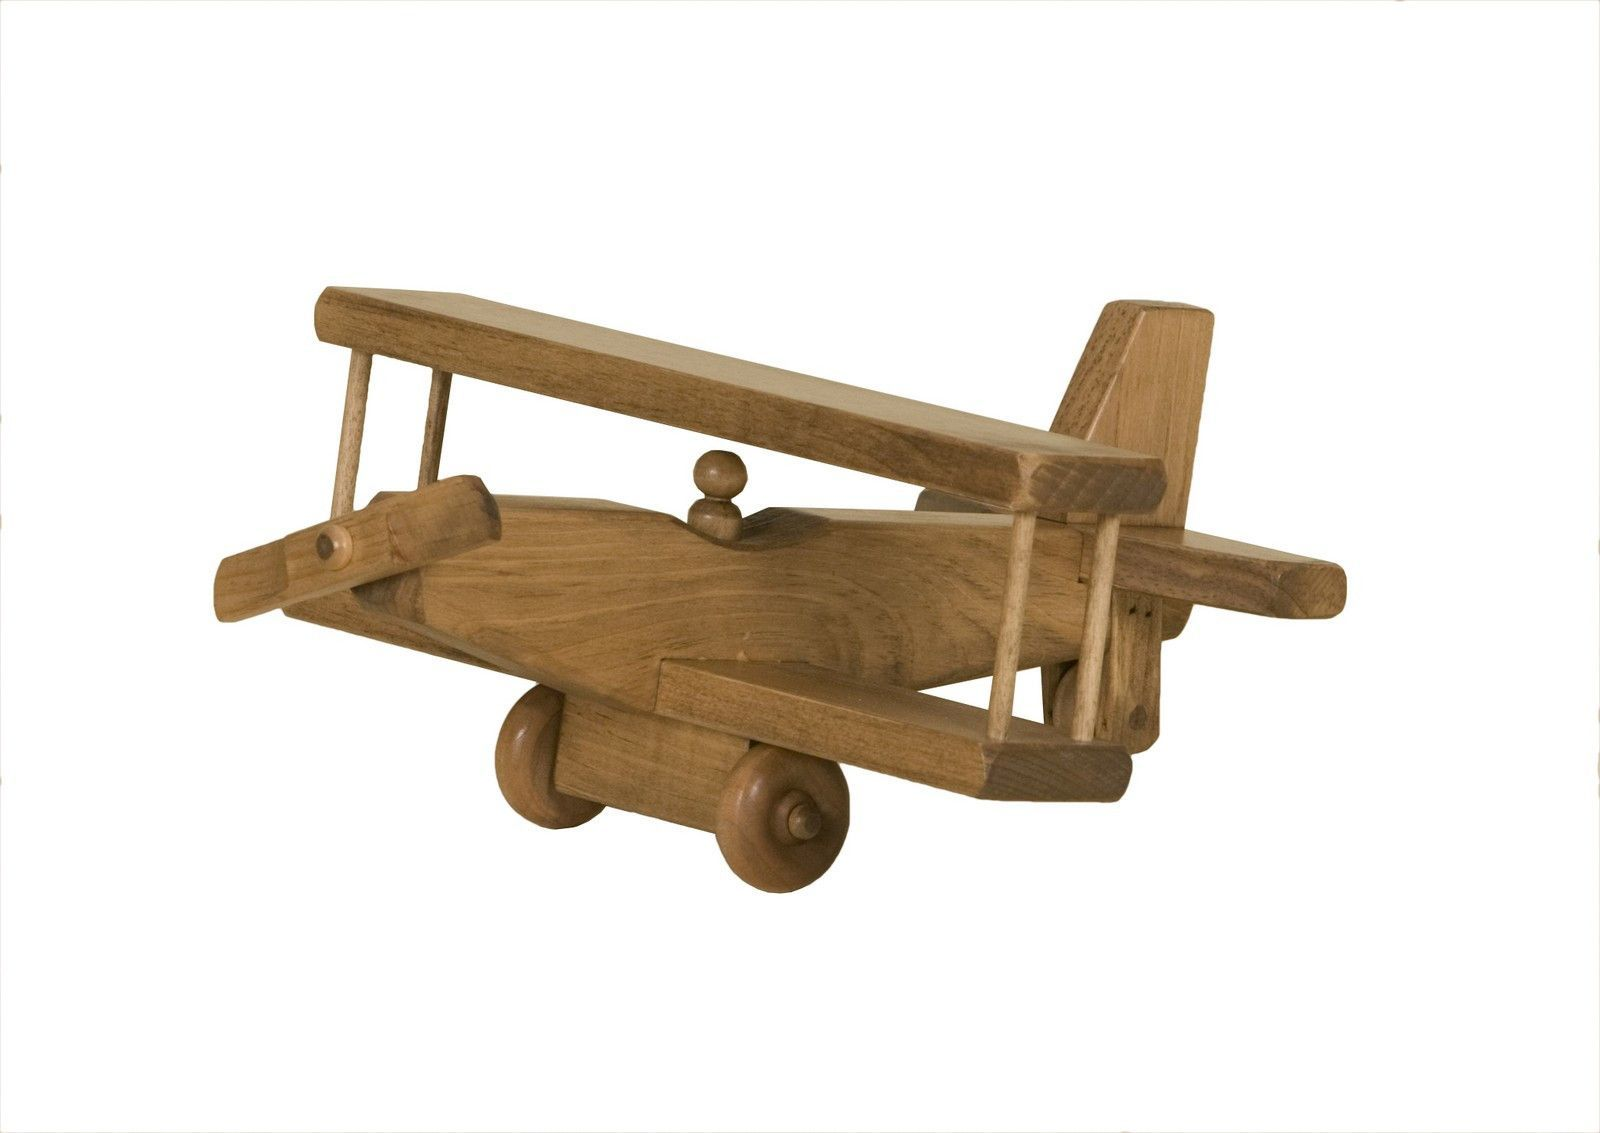 Wooden Airplane Toy Amish Made Making Wooden Toys